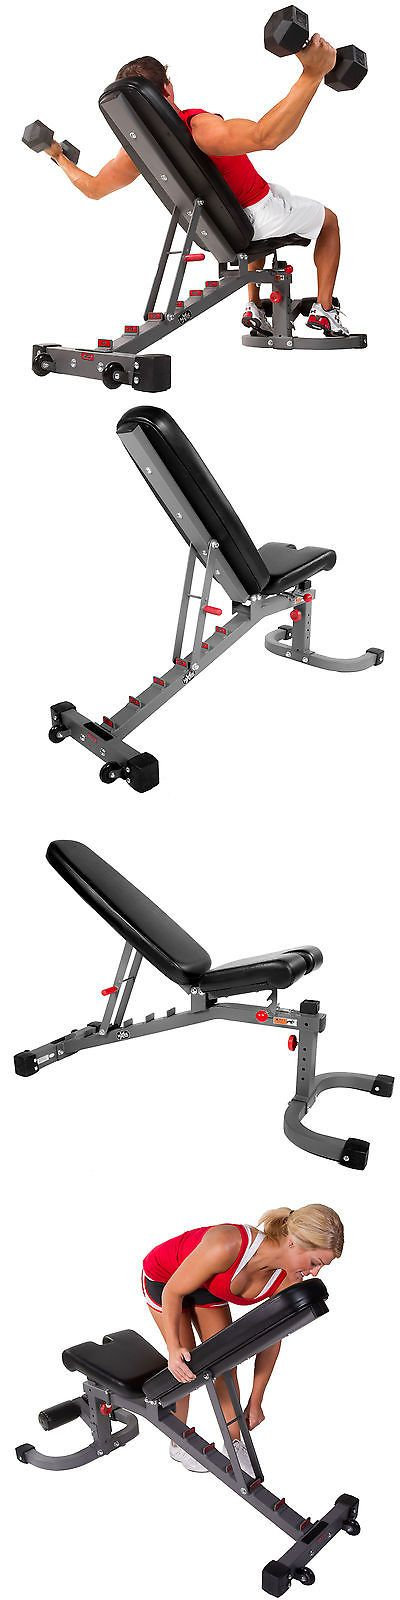 Benches 15281: Xmark Fitness 11-Gauge (Fid) Flat Incline Decline Bench (Xm-7472) -> BUY IT NOW ONLY: $293 on eBay!